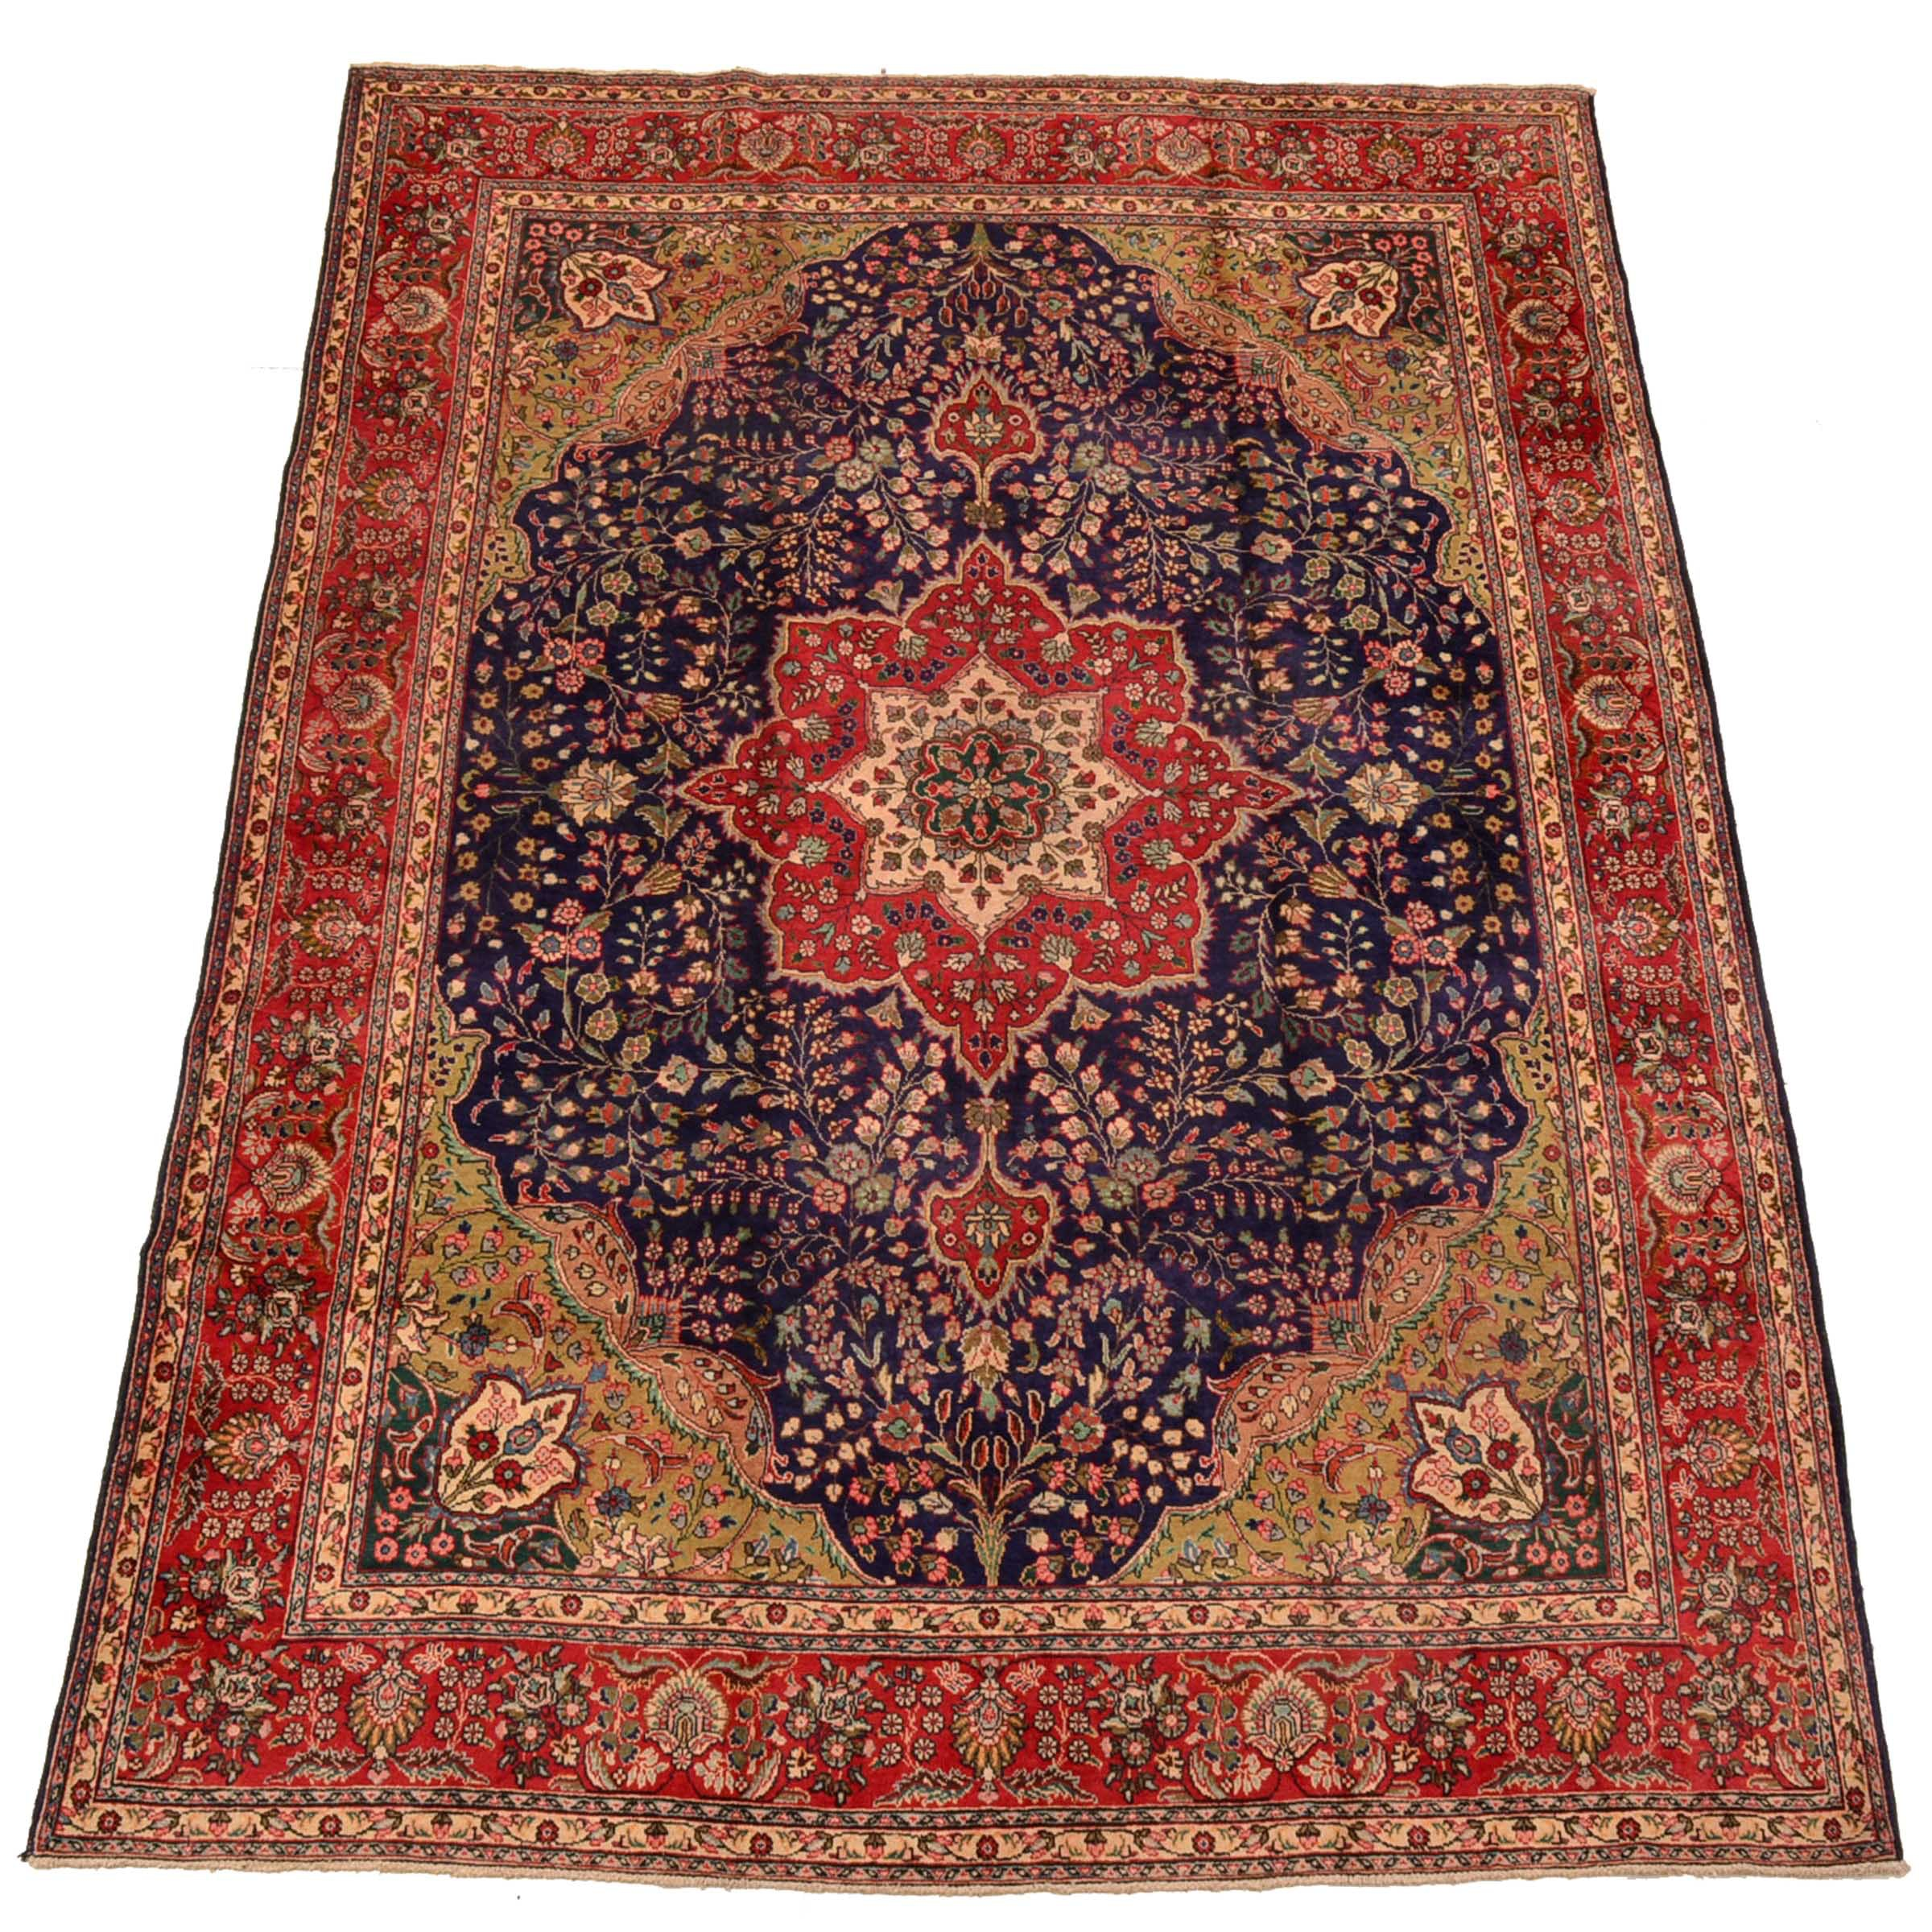 Hand-Knotted Persian Qum Room-Size Rug